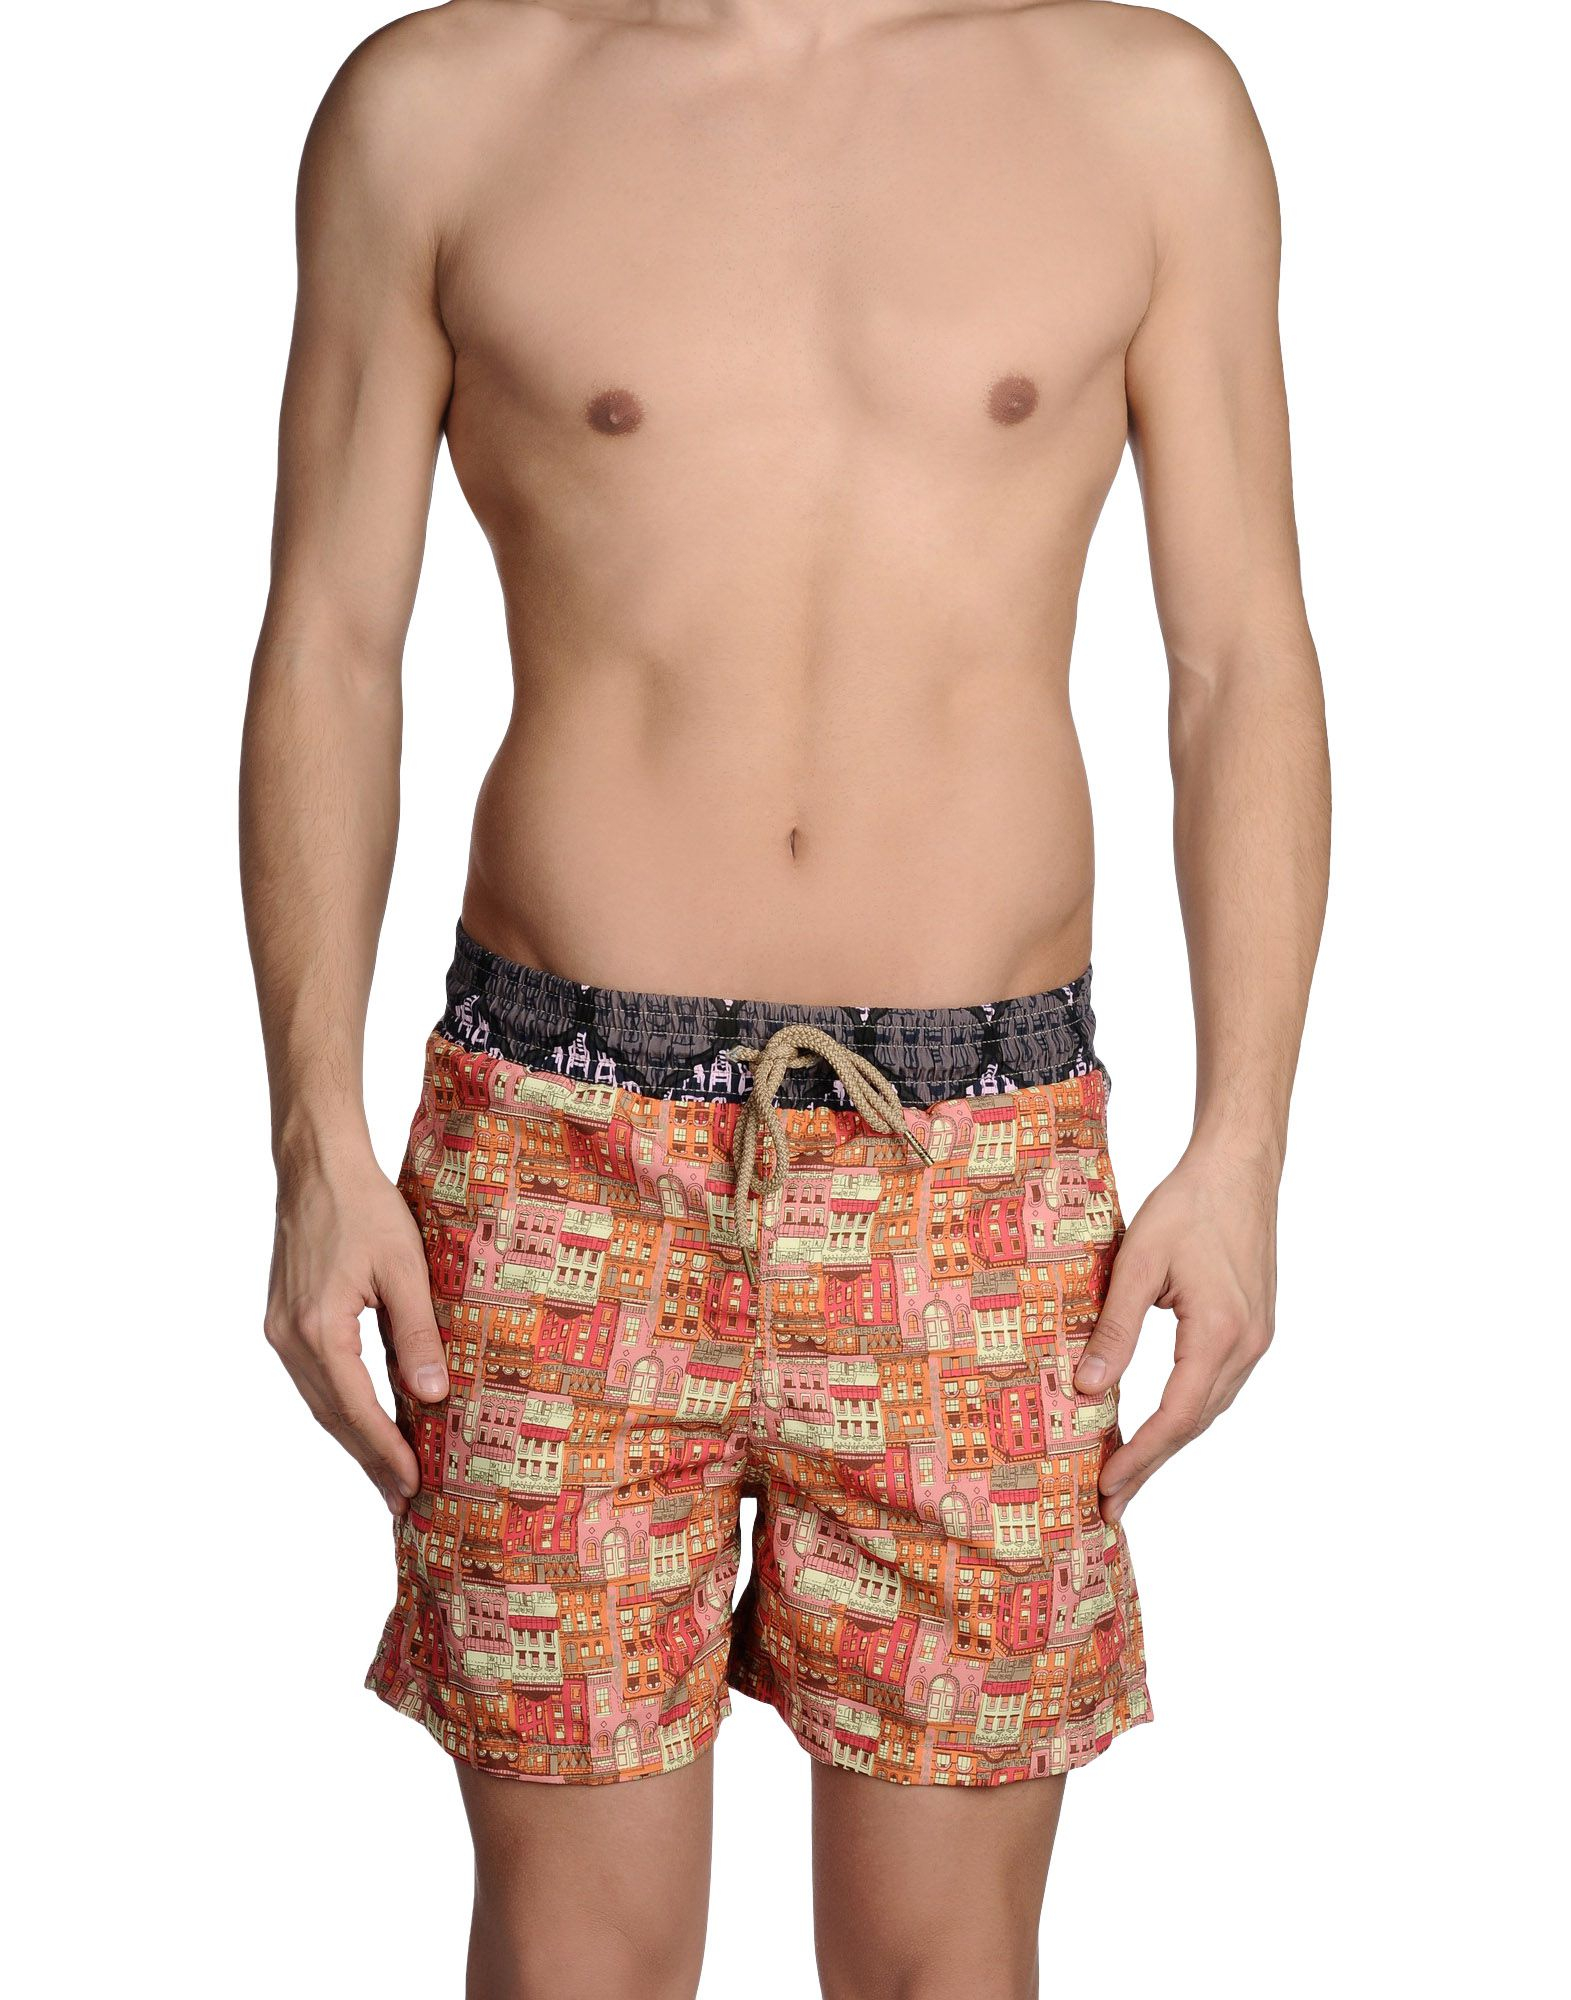 Maaji Swimming Trunk In Orange For Men Lyst